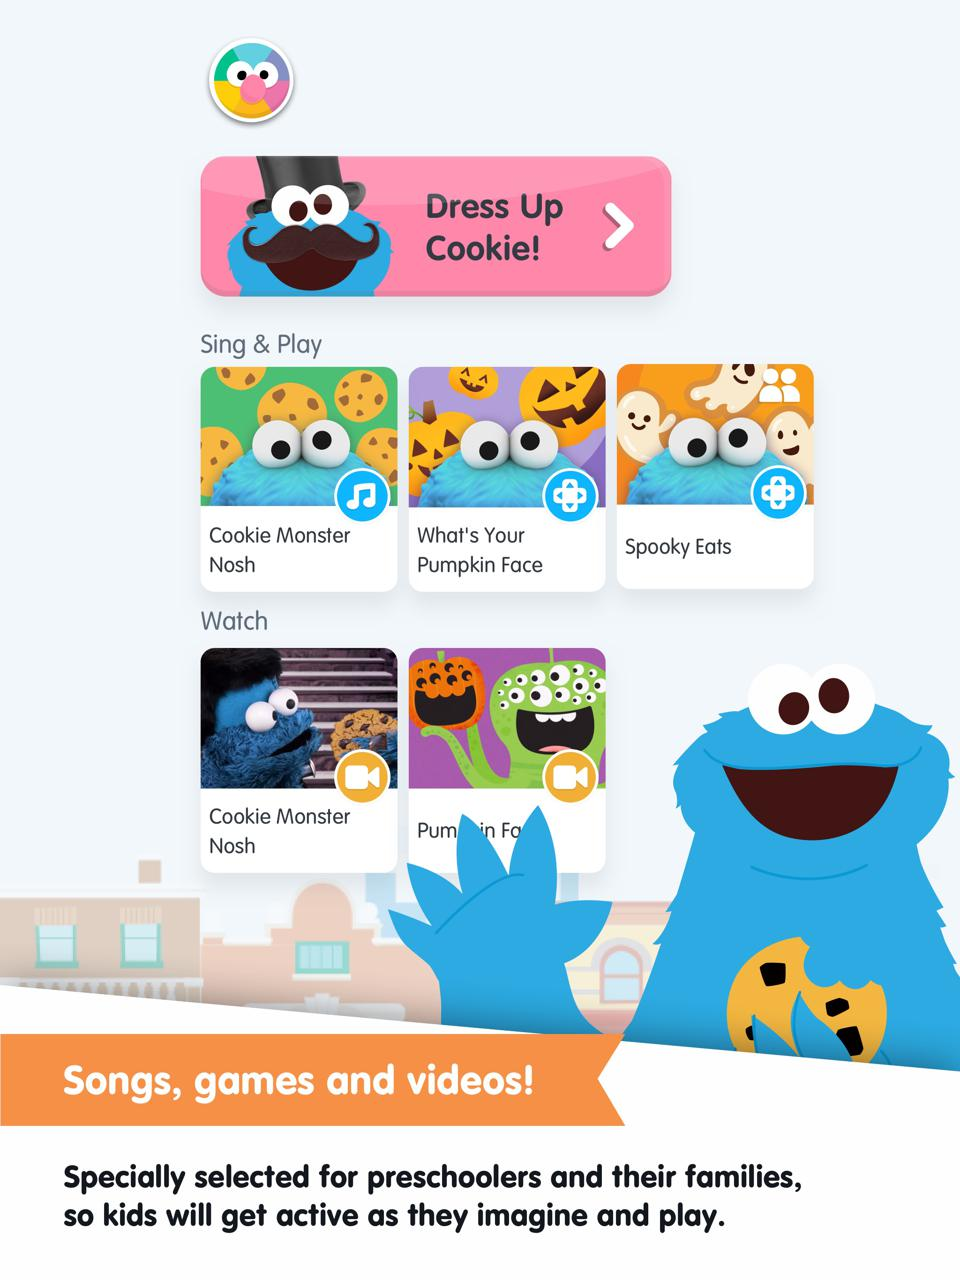 AR is how kids can access the new 50th Anniversary Sesame Street app